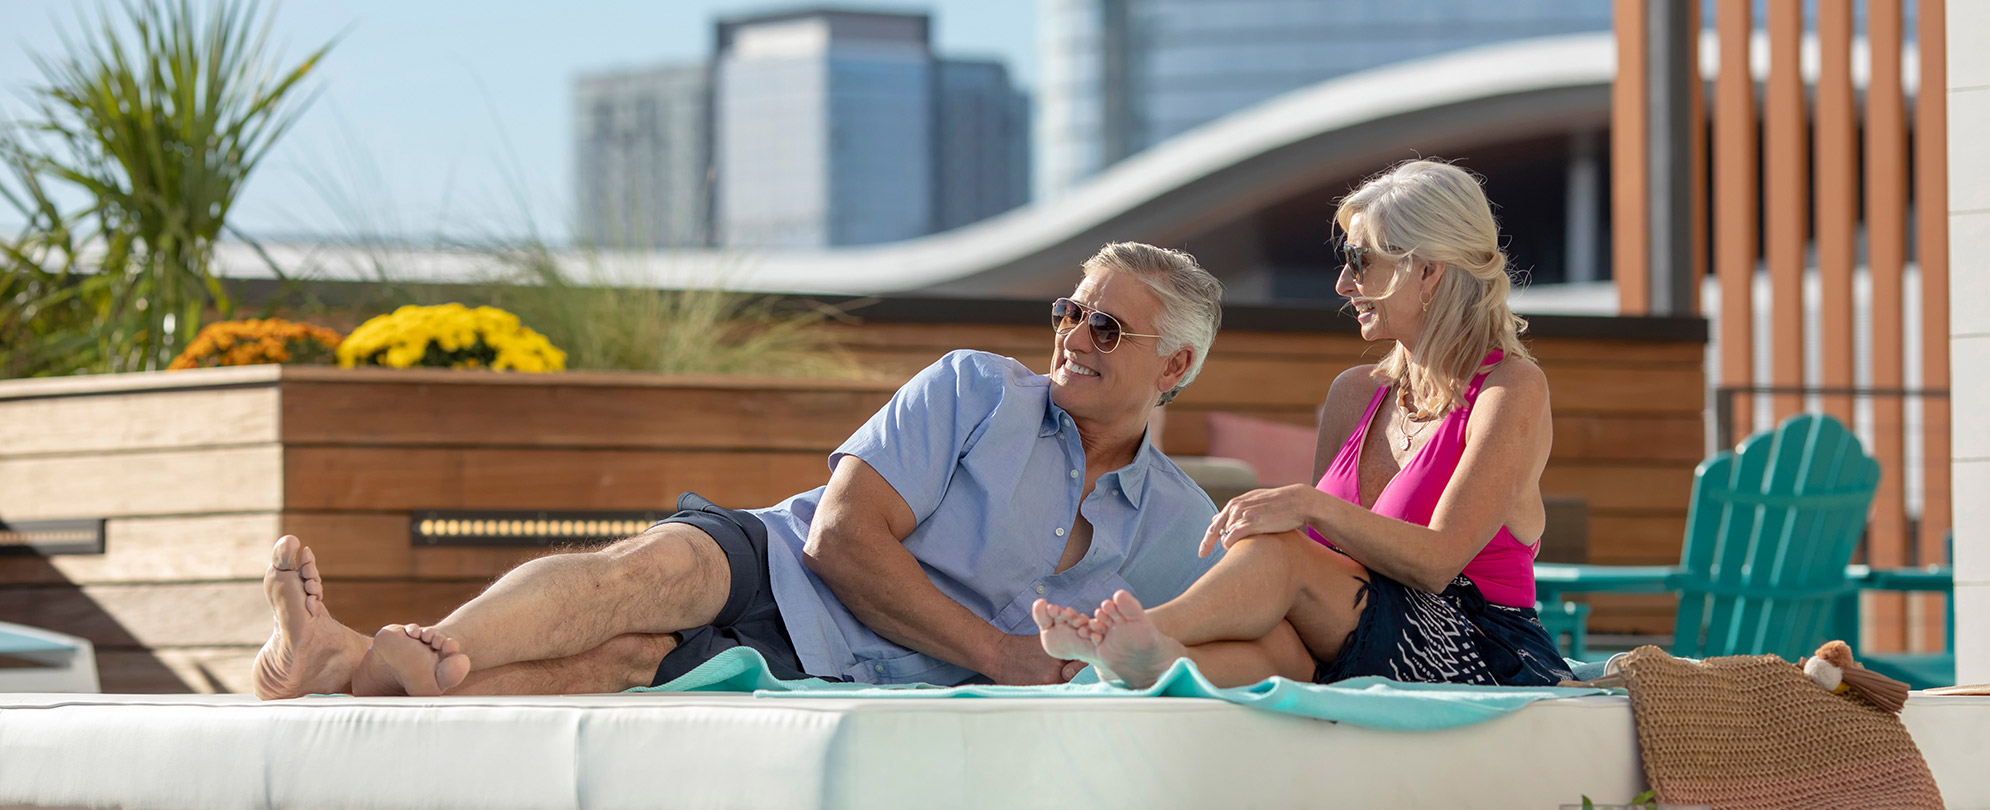 Smiling older man and woman lay in pool chairs by the rooftop pool at Margaritaville Vacation Club by Wyndham - Nashville.